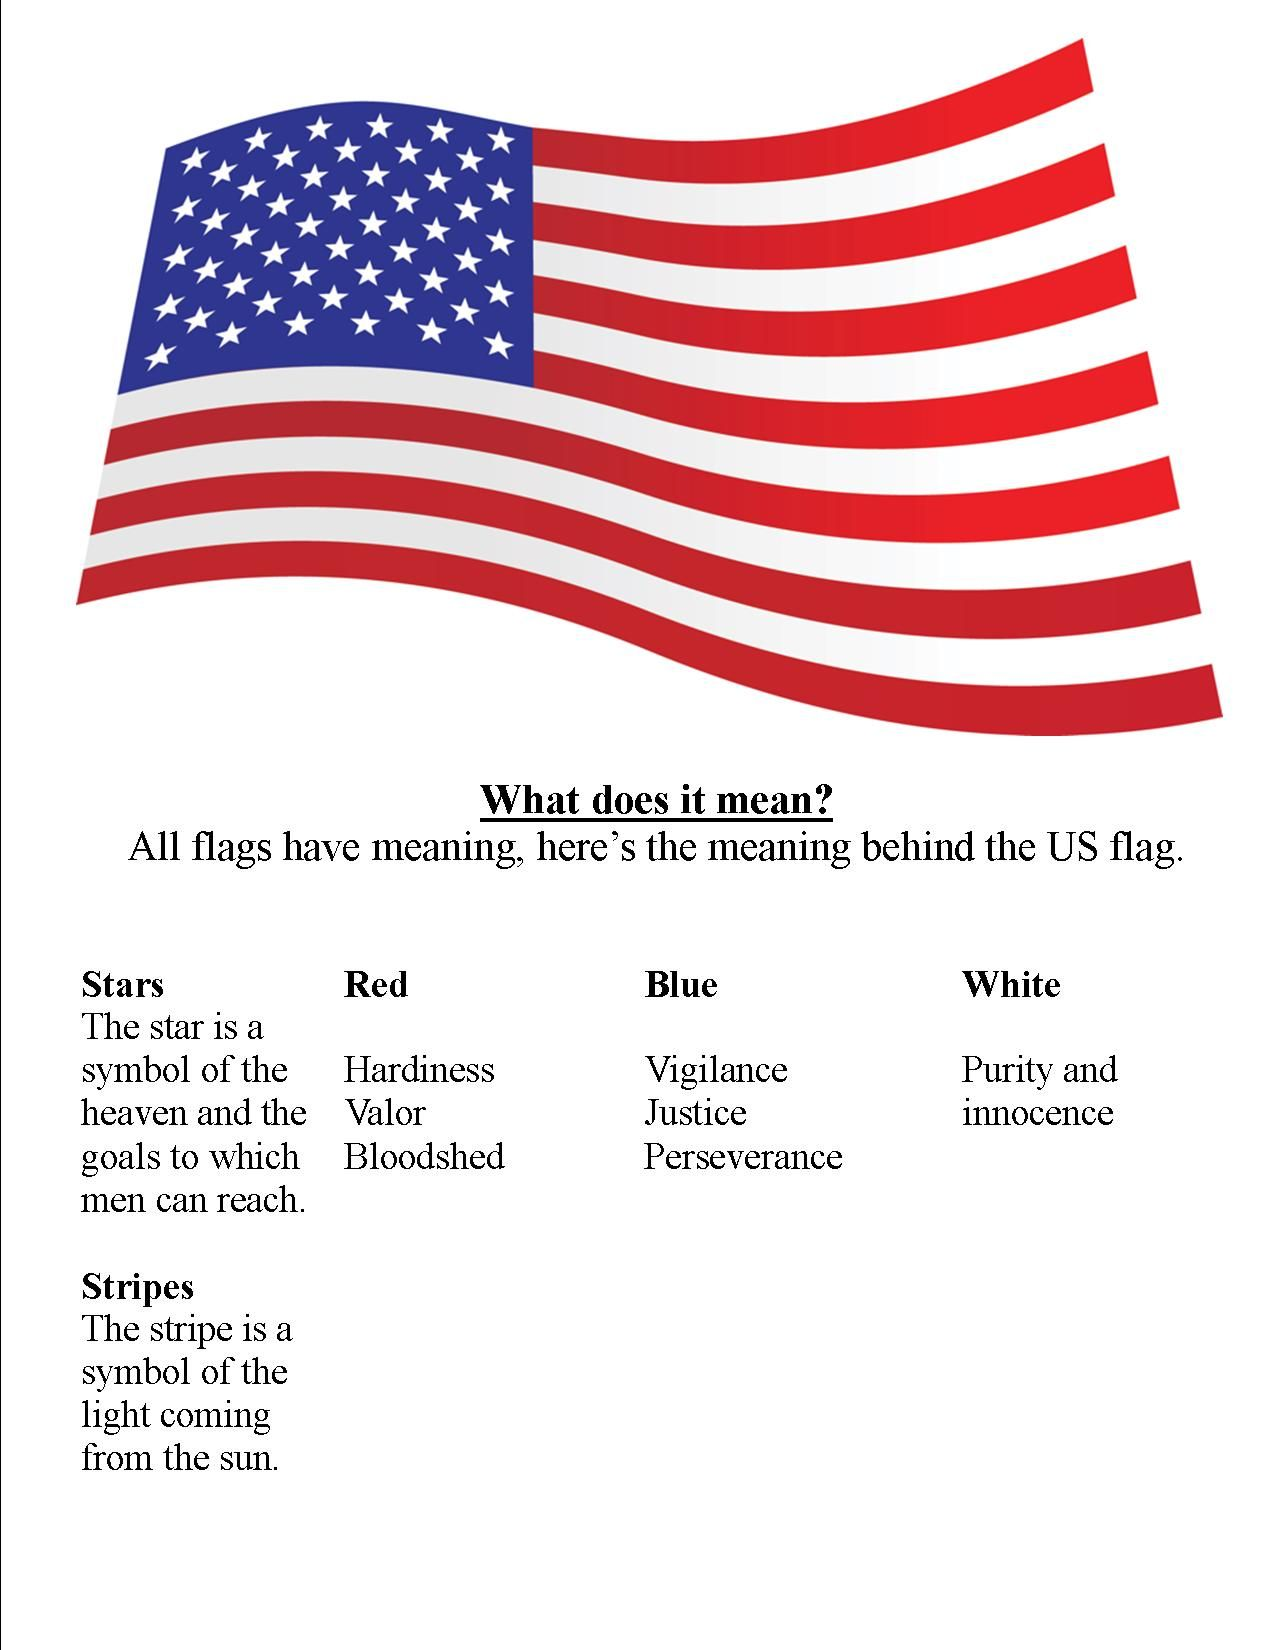 American Flag Class American Flag Meaning Usa Flag Images Flag